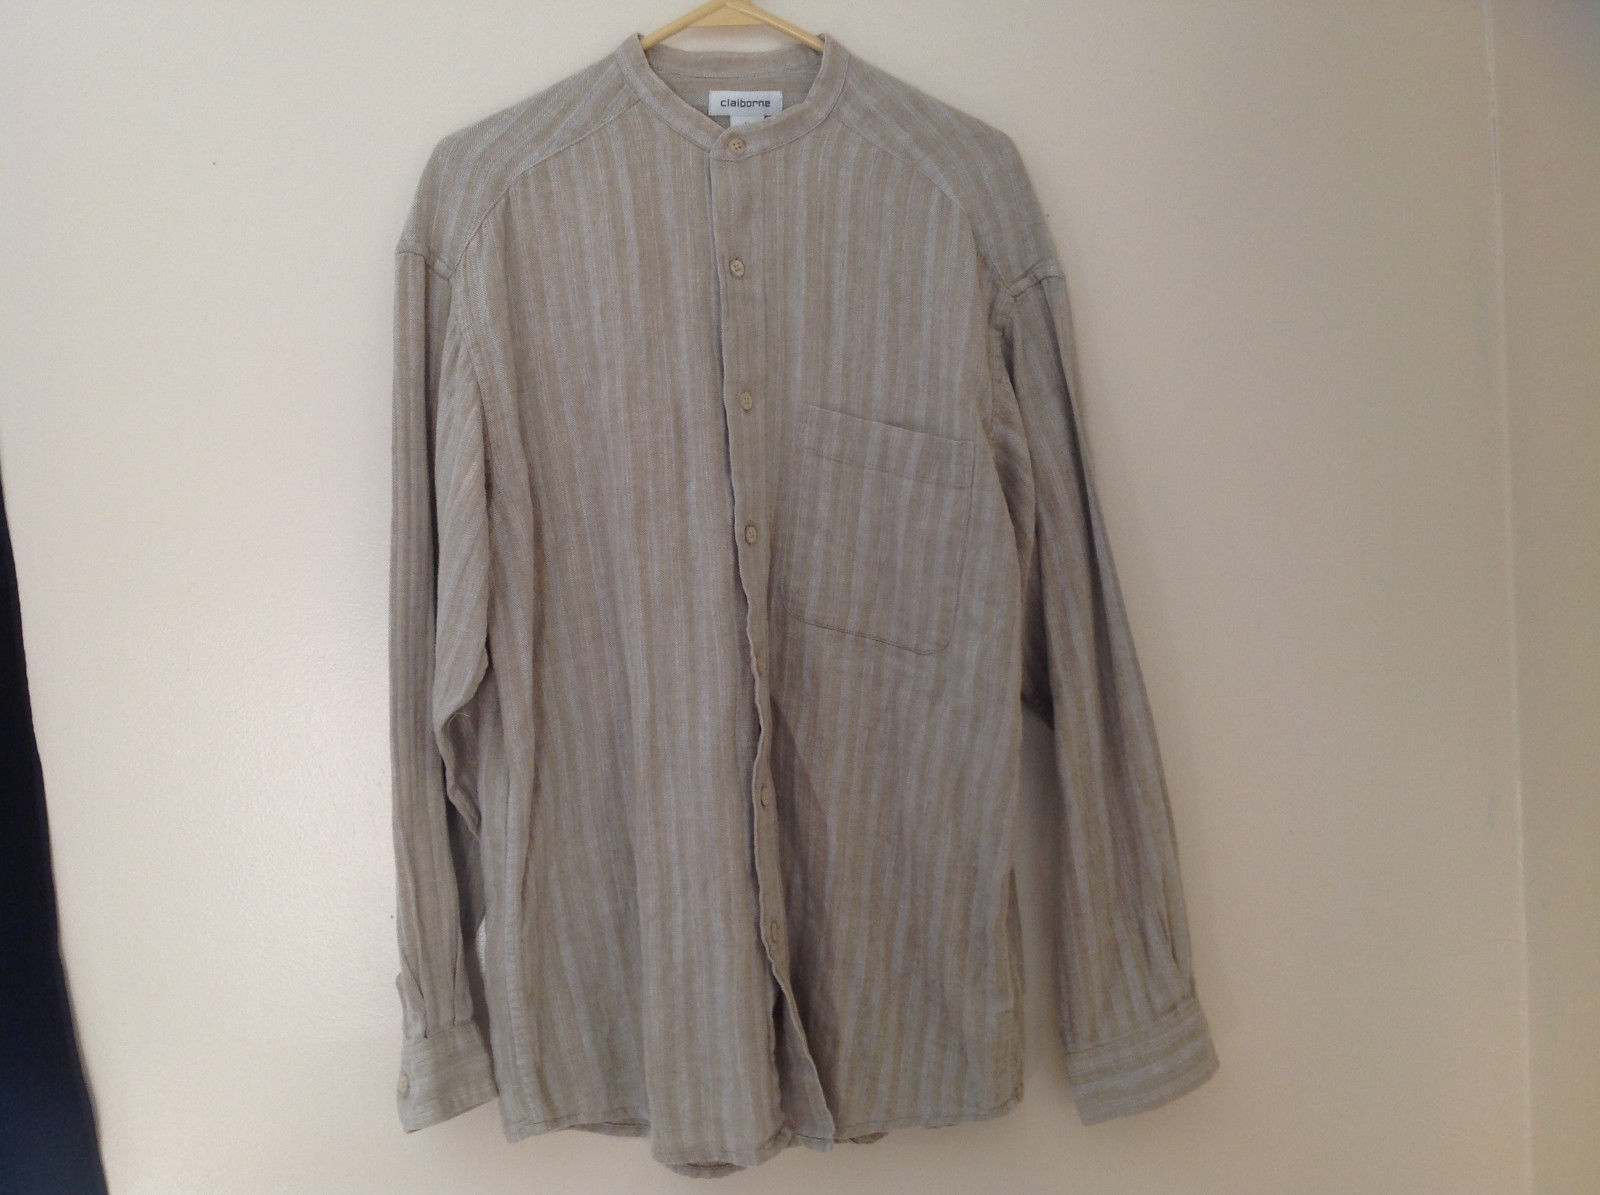 Pale Green Herringbone Button Up Long Sleeve Shirt Claiborne Size Medium